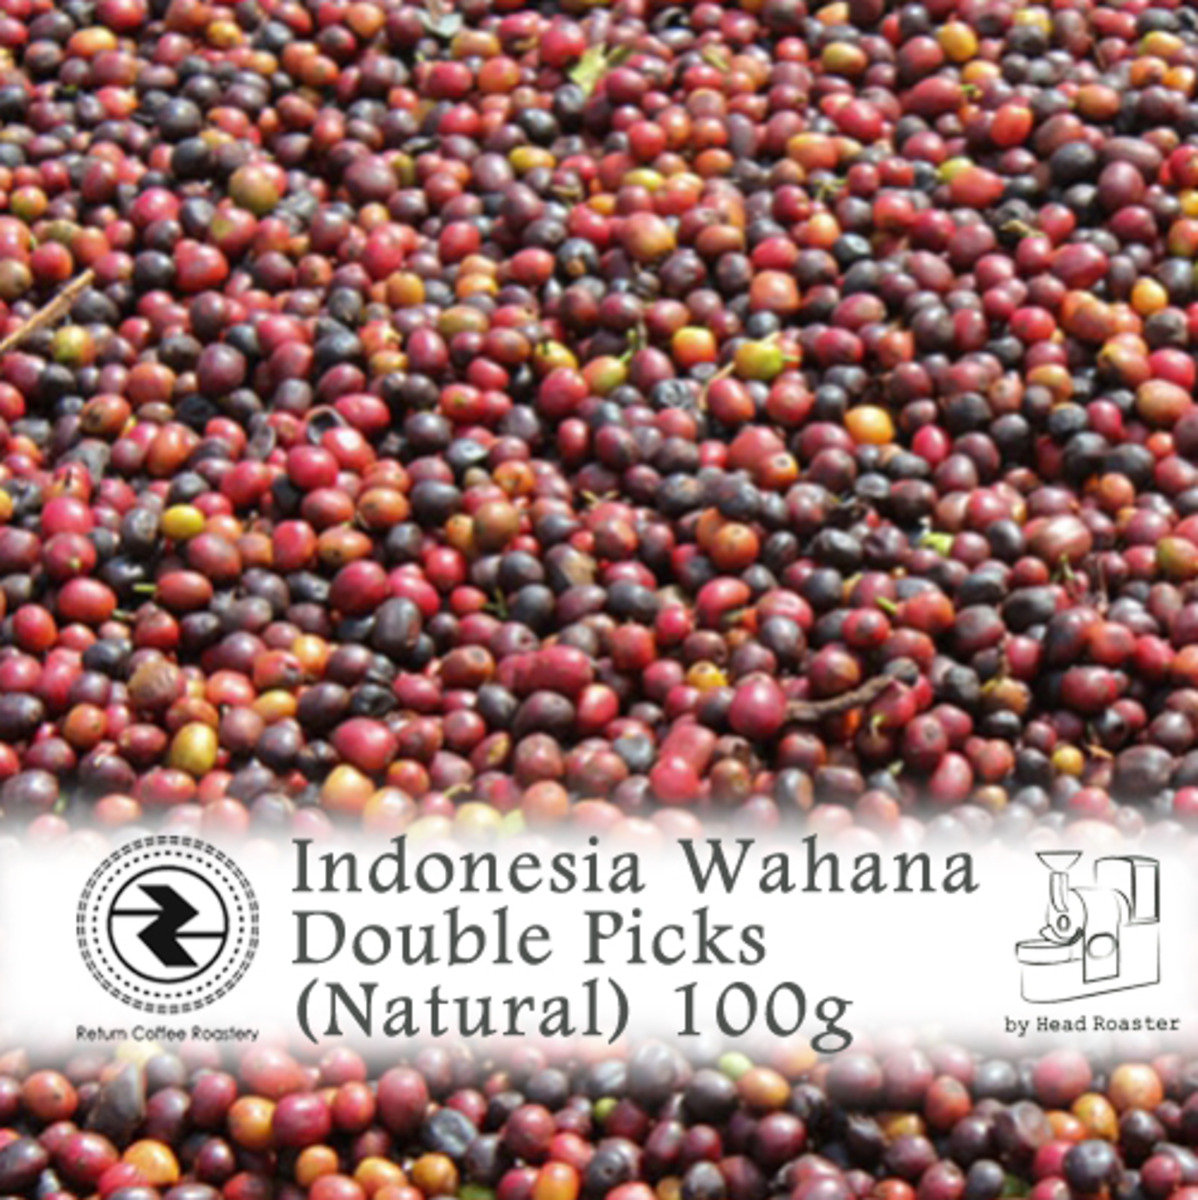 Wahana Double Picks (Natural) by Head Roaster